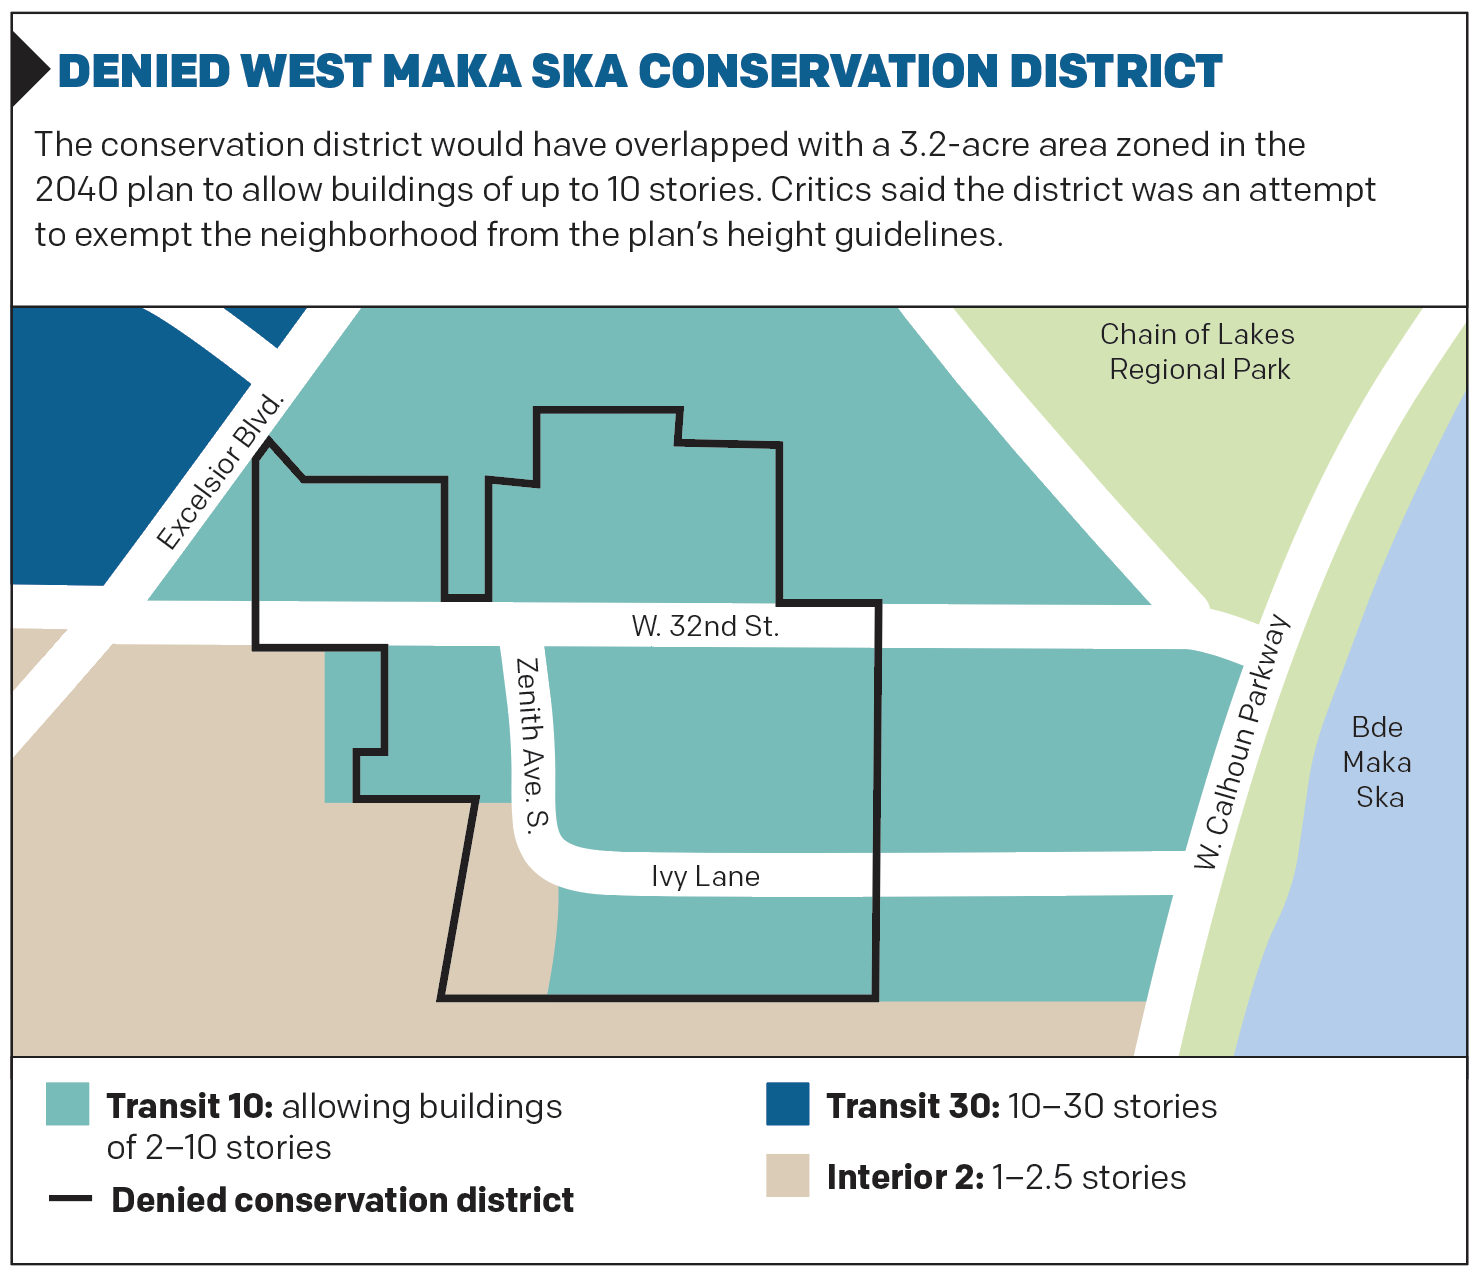 DENIED WEST MAKA SKA CONSERVATION DISTRICT